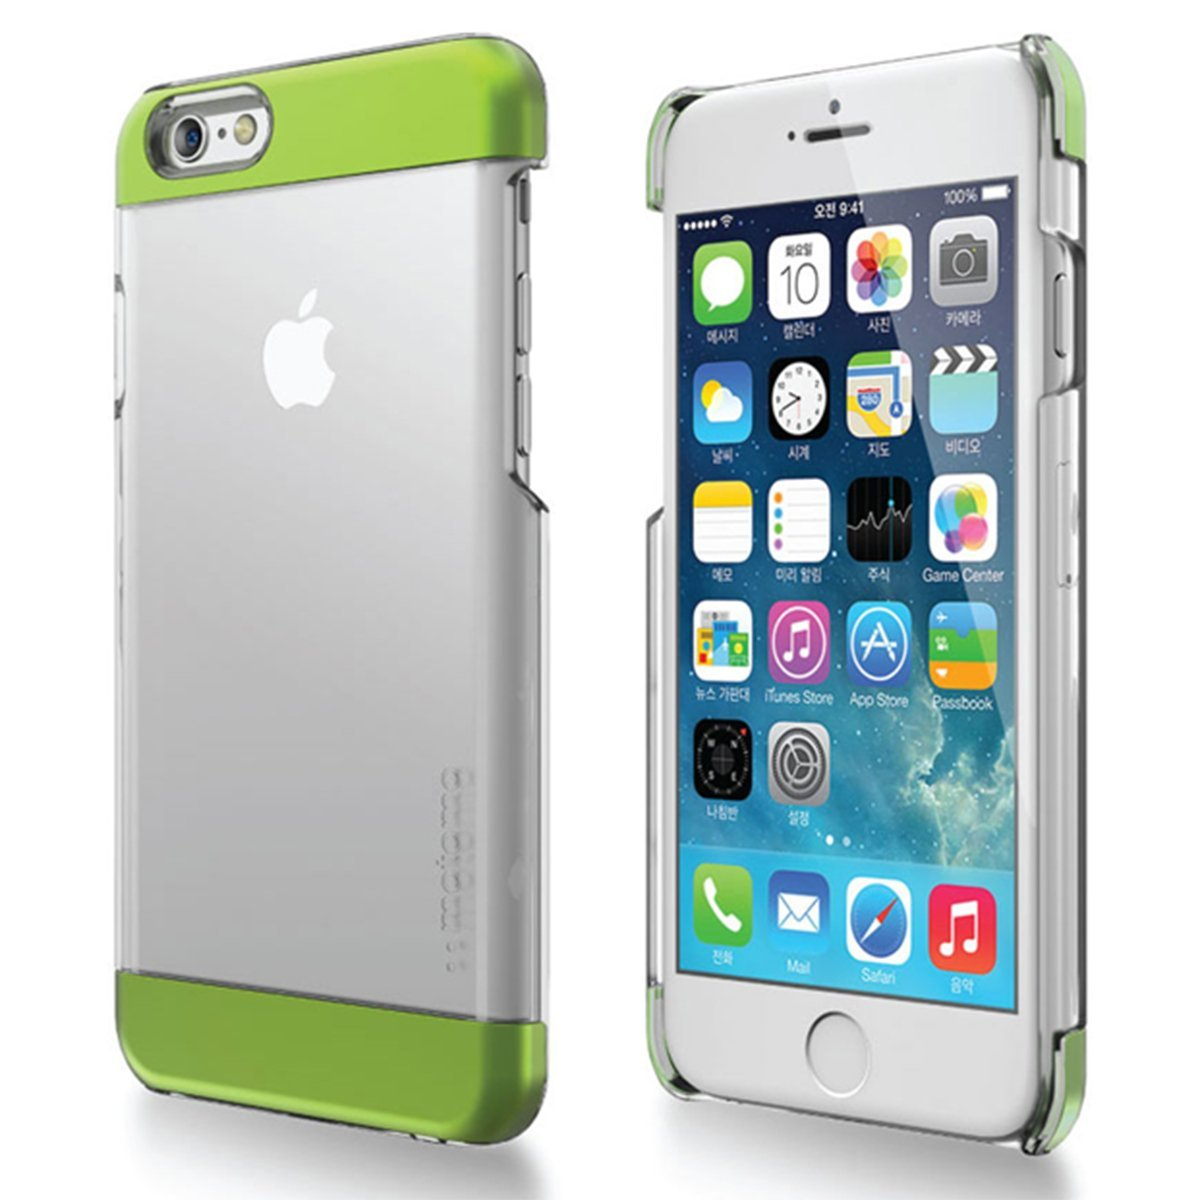 Made for Apple iPhone 6/ 6S Case,  [Green] INO Wing Series Slim Protective Crystal Glossy Snap-on Hard Polycarbonate Plastic Case Cover by Redshield